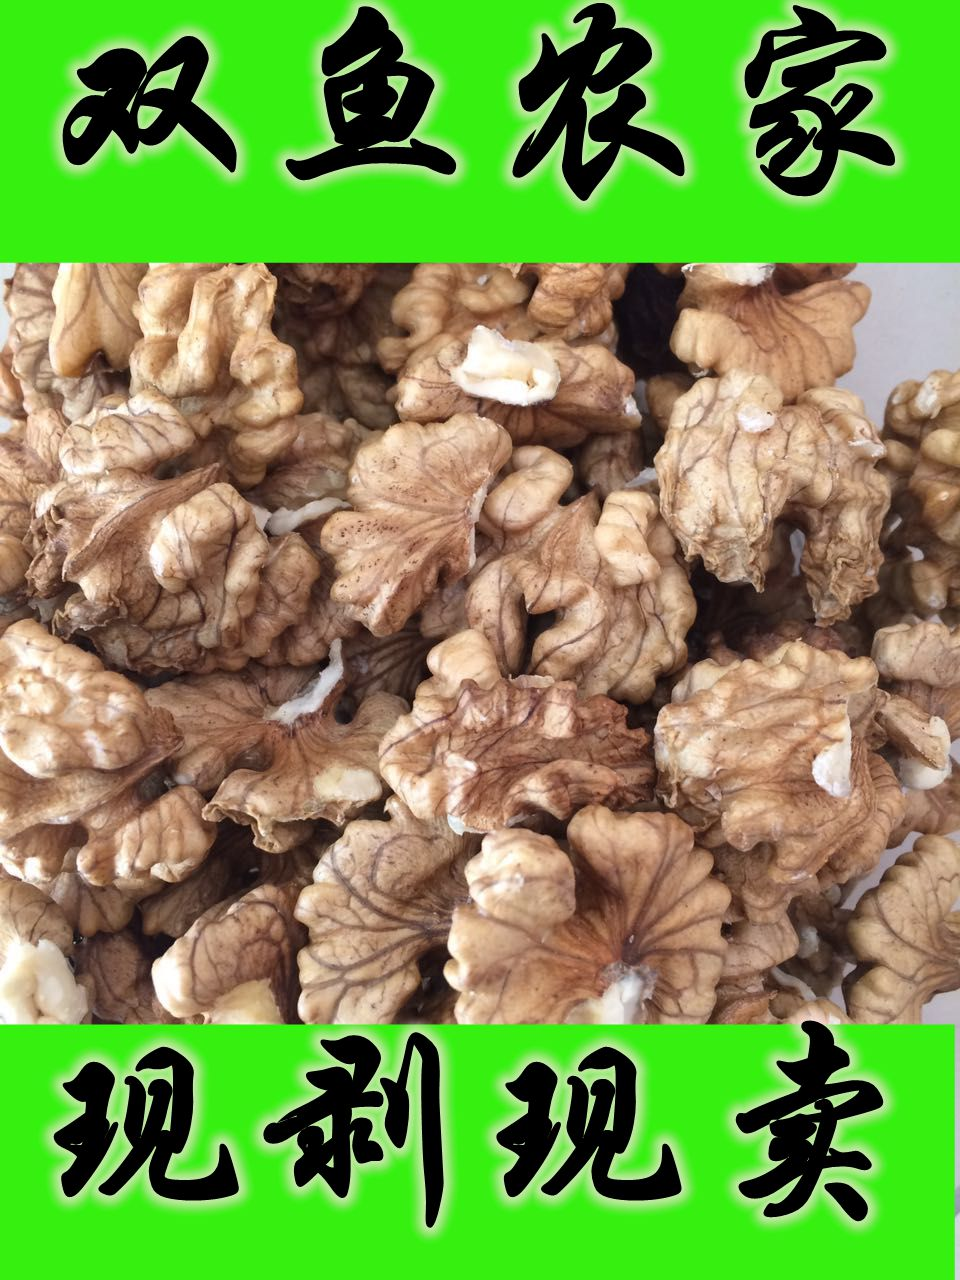 Pisces thin skinned walnut kernel walnut meat is not bleached, the meat is fresh, peeled and sold, raw is not cooked 500g